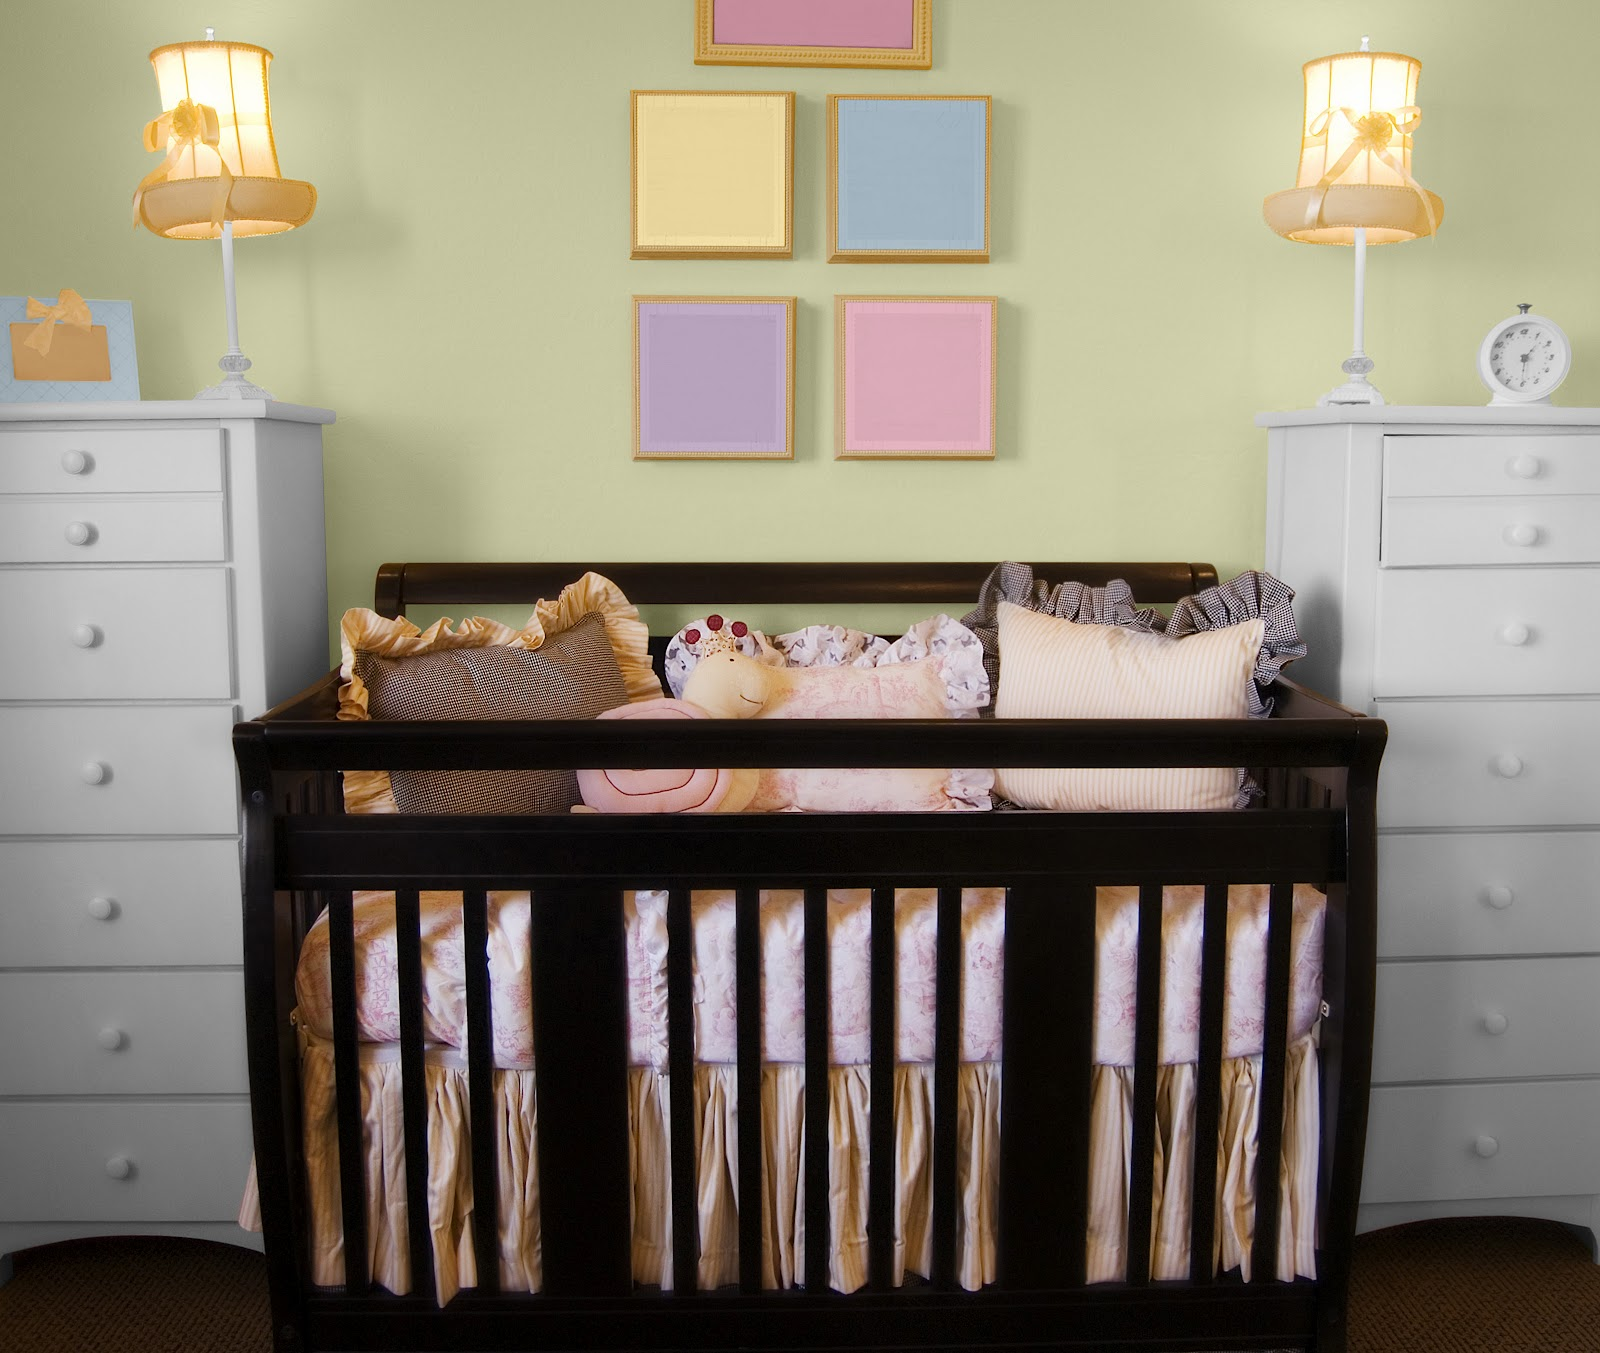 Top 10 baby nursery room colors and decorating ideas for Baby room decoration pictures